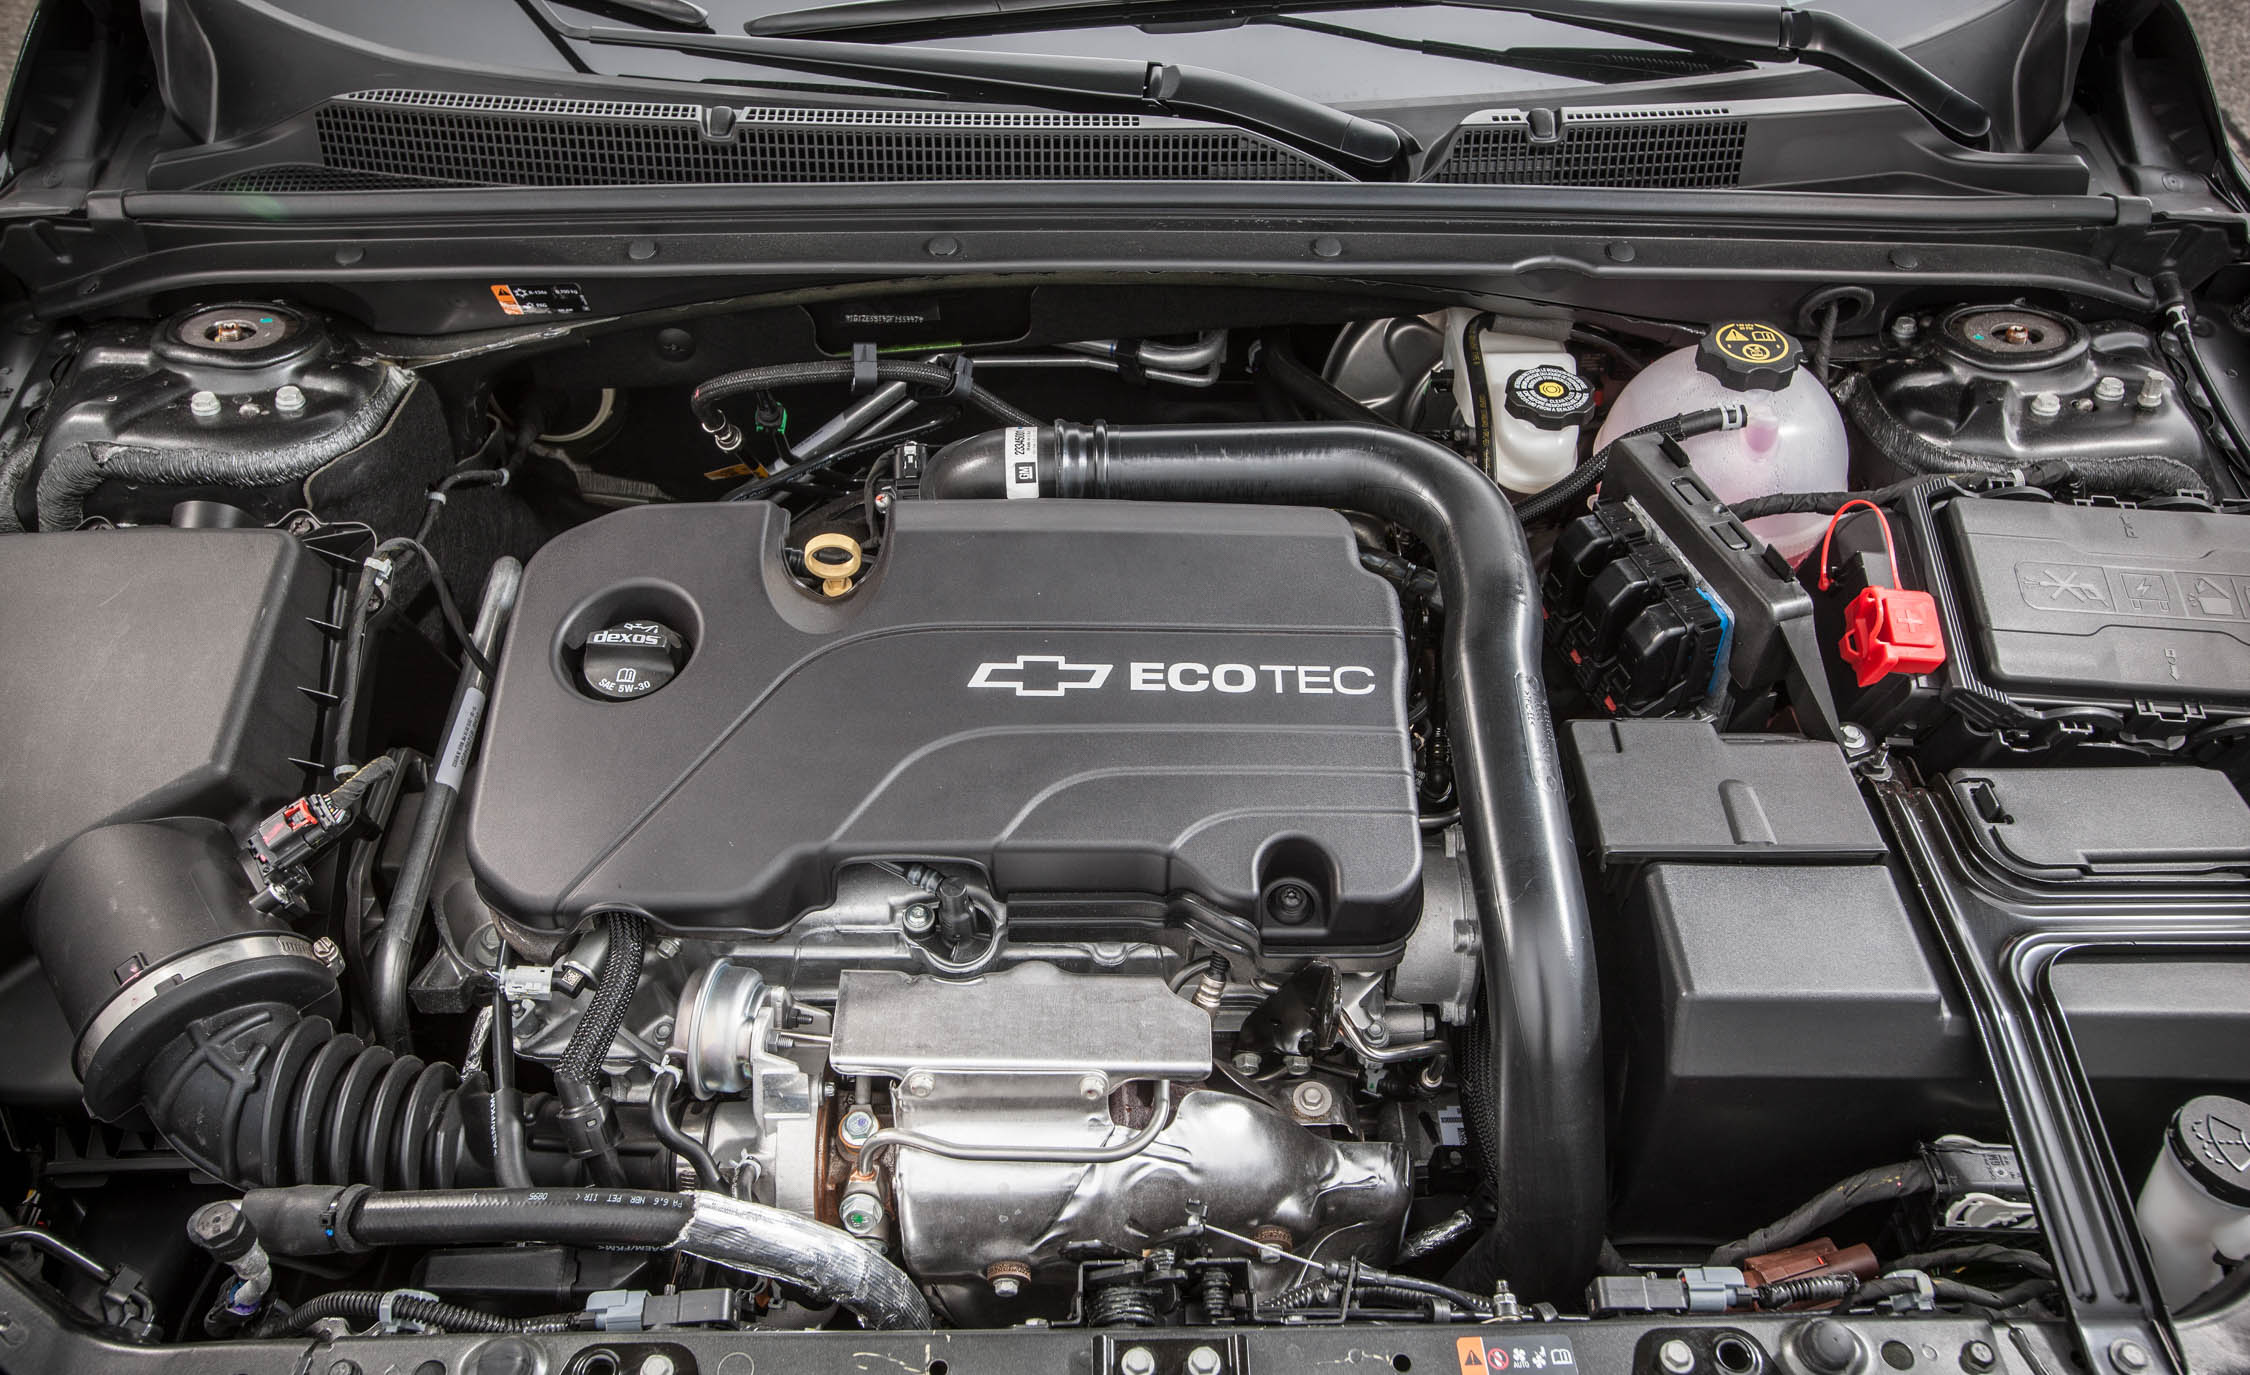 2016 Chevrolet Malibu LT 1.5T Turbocharged  (Photo 19 of 19)